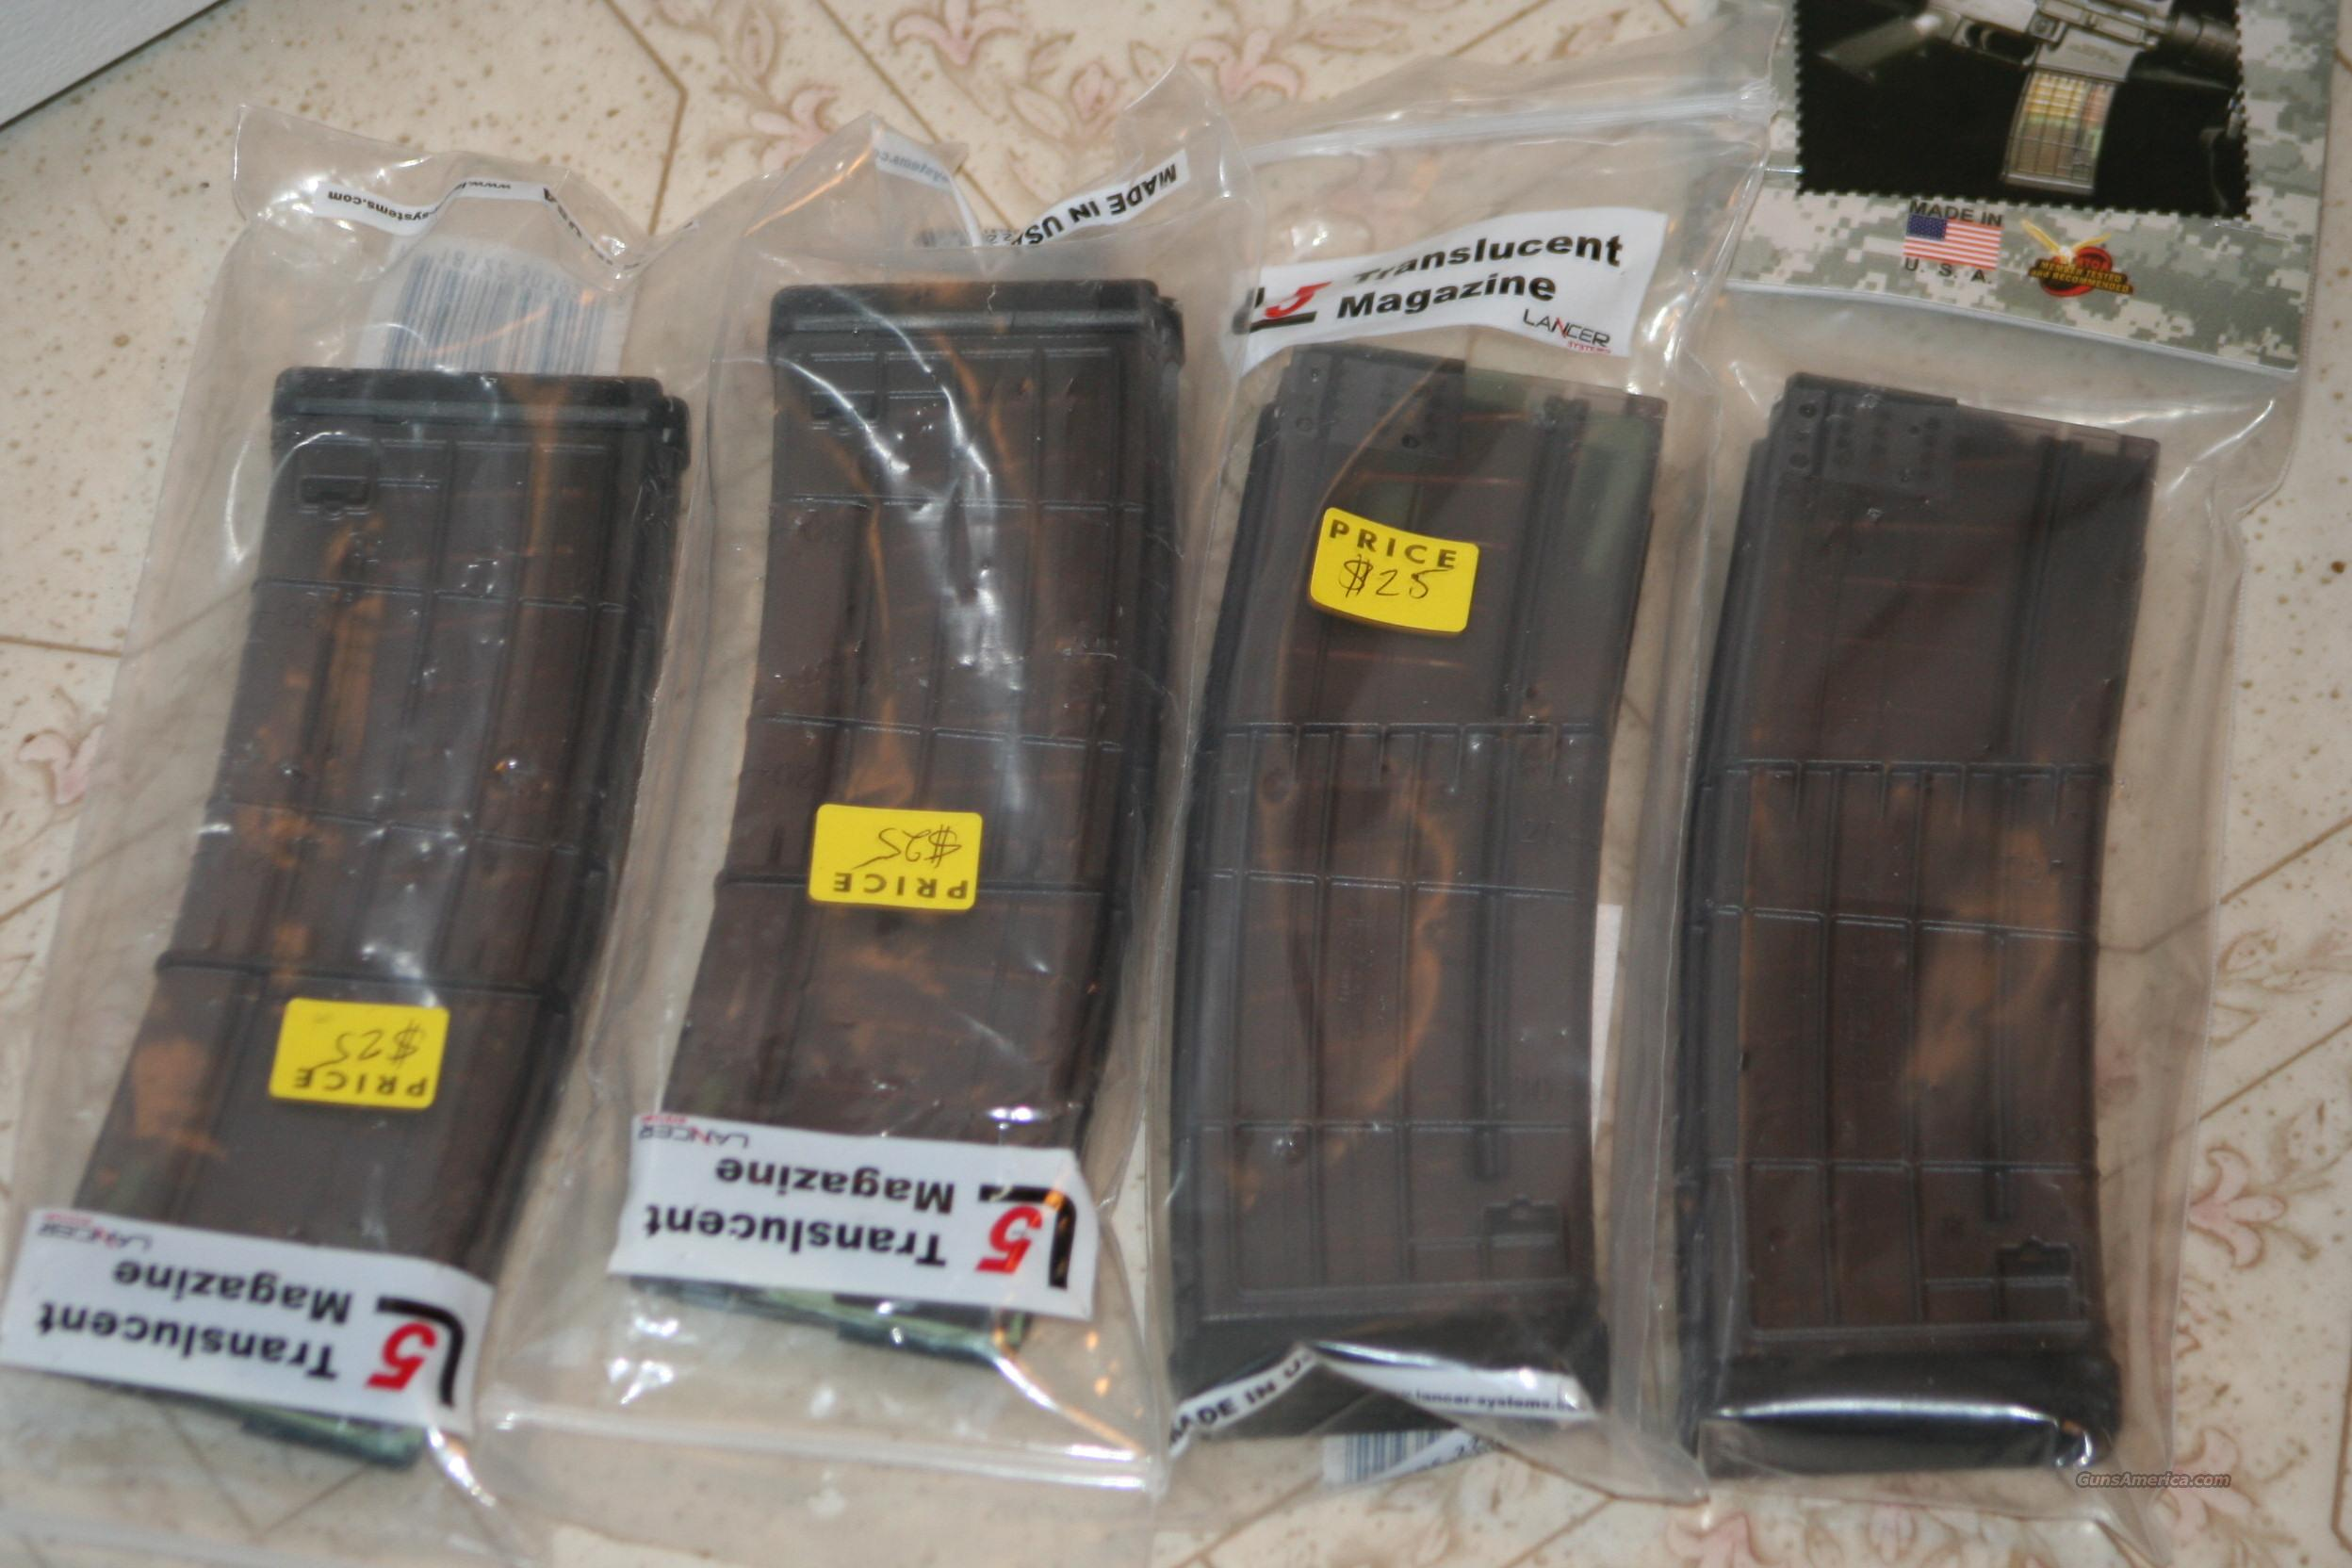 4 Lancer 30rd Magazines Translusent Mags for AR15 SIG FN  Non-Guns > Magazines & Clips > Rifle Magazines > AR-15 Type